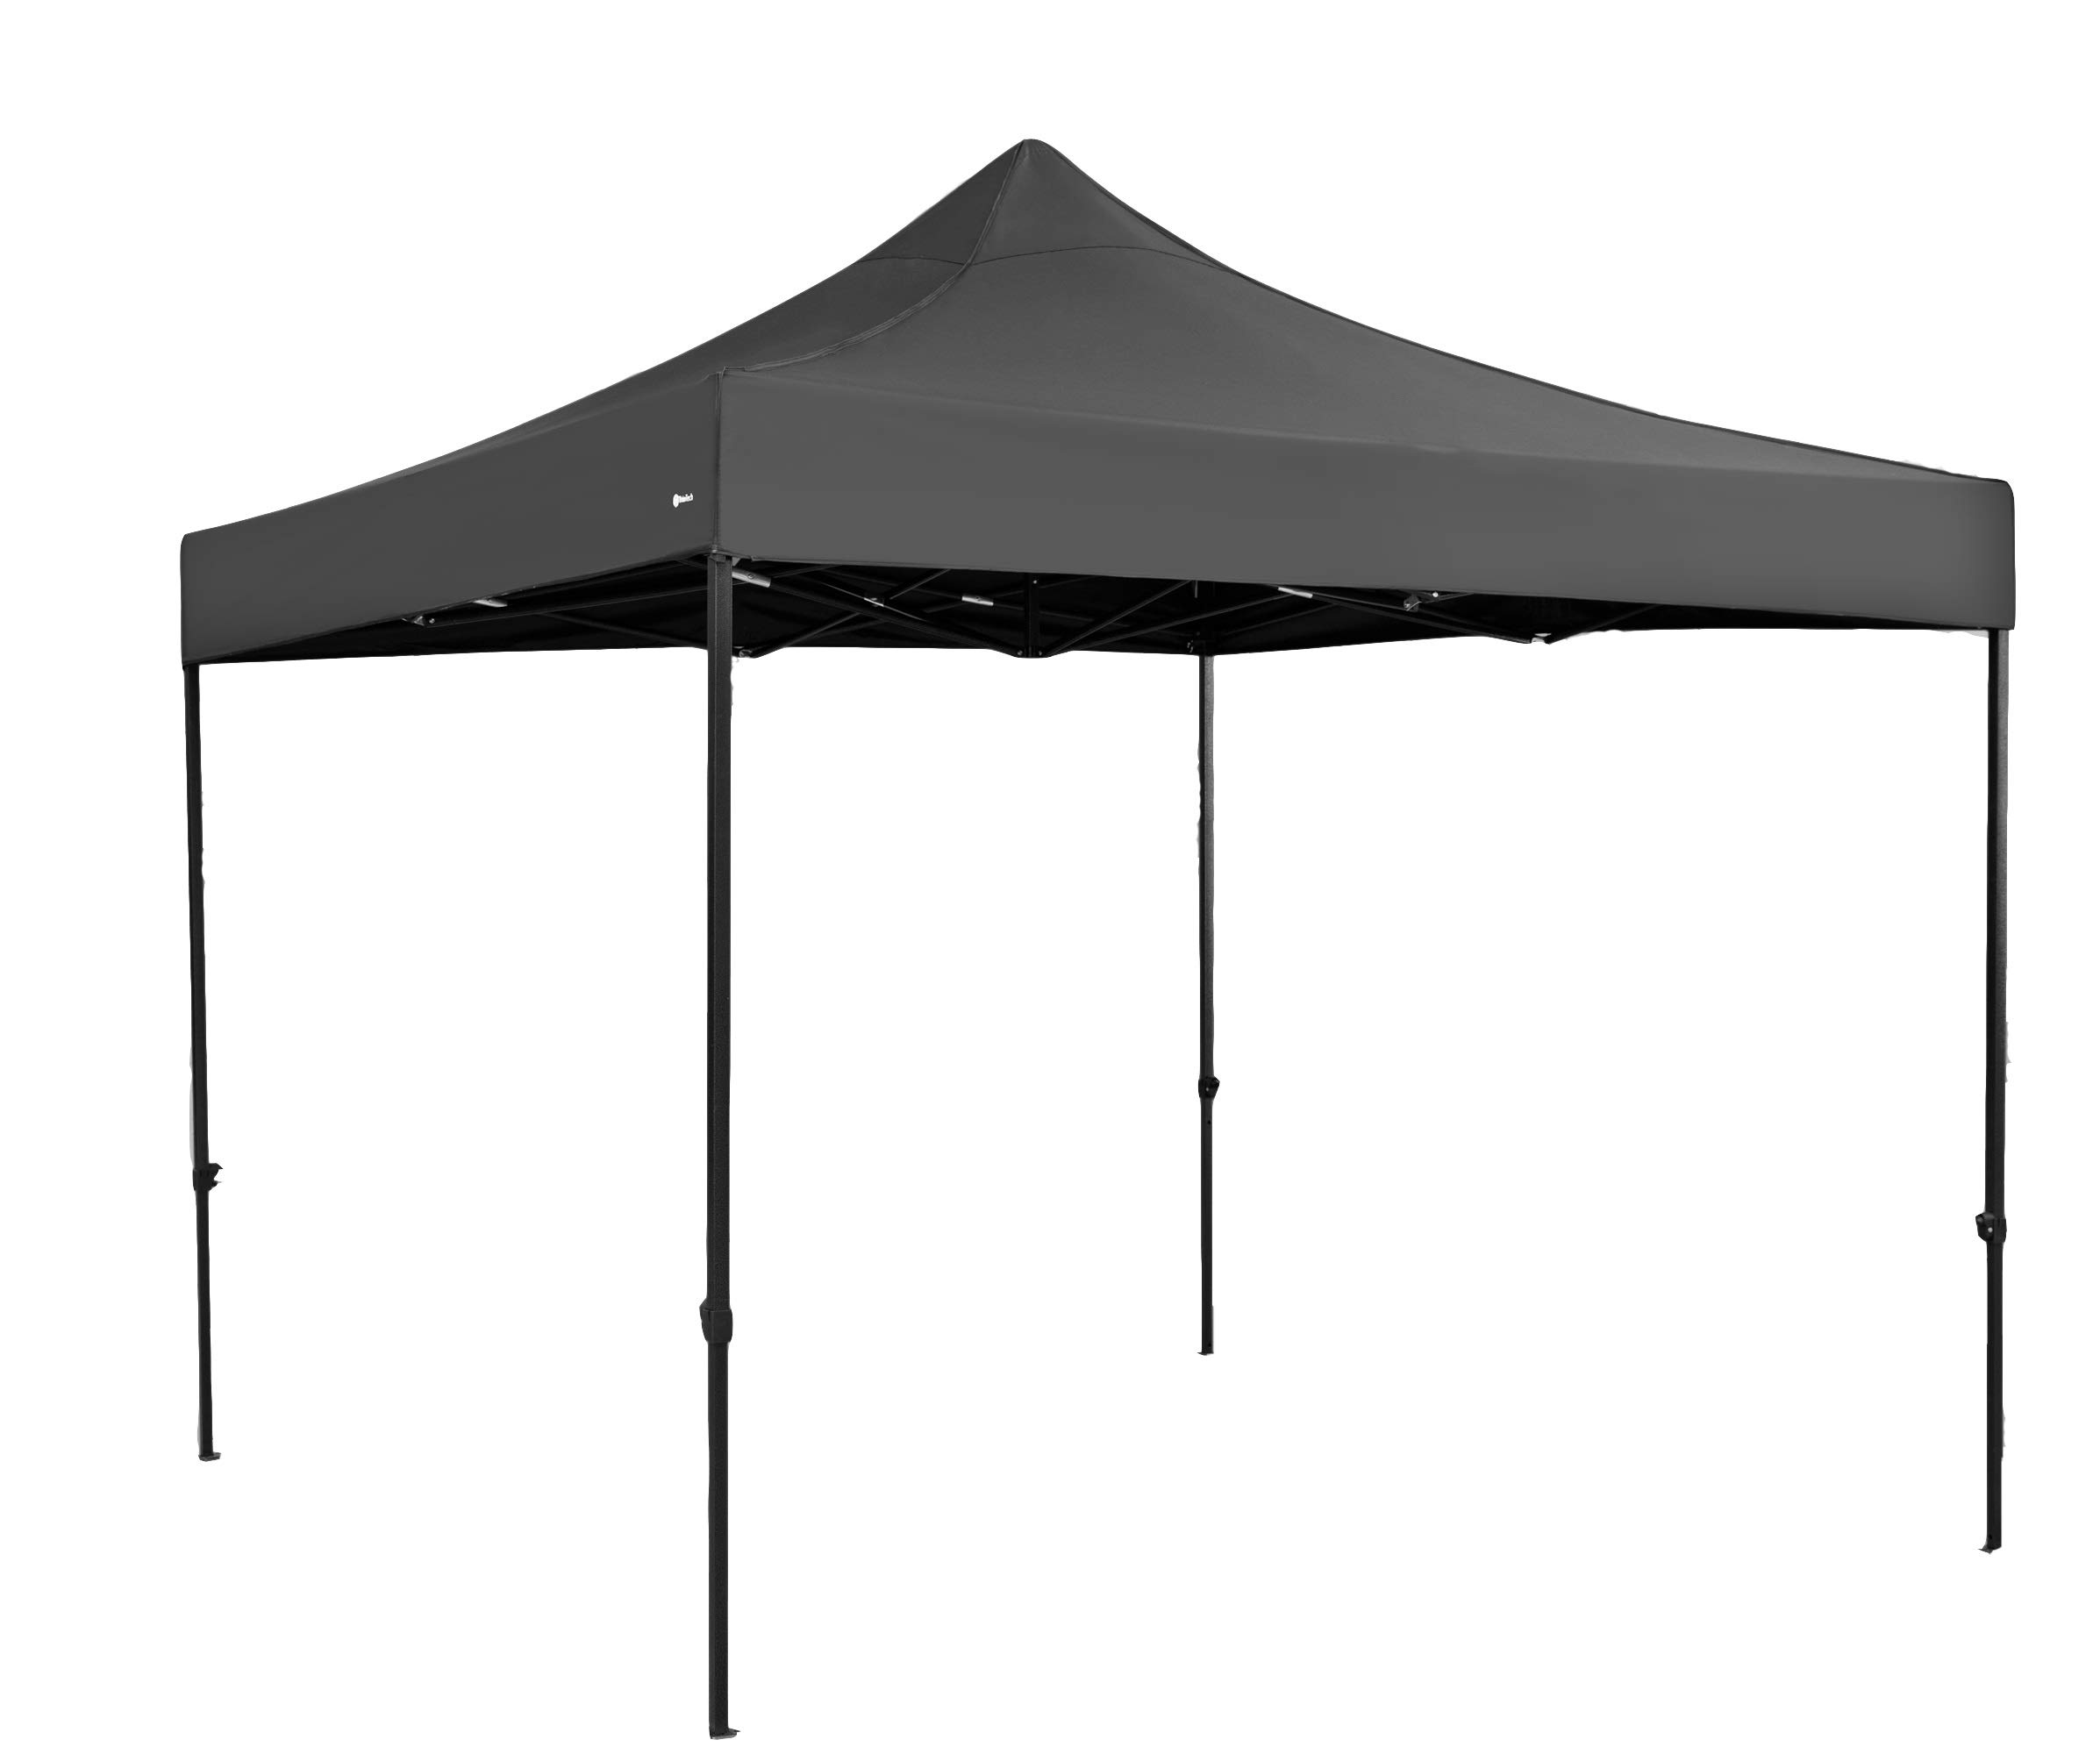 TrioTech Premium Canopy Tent 10x10 Feet Canopy - Easy to Set Up - UV Coated and Waterproof - Includes Carry Bag and Installation Manual